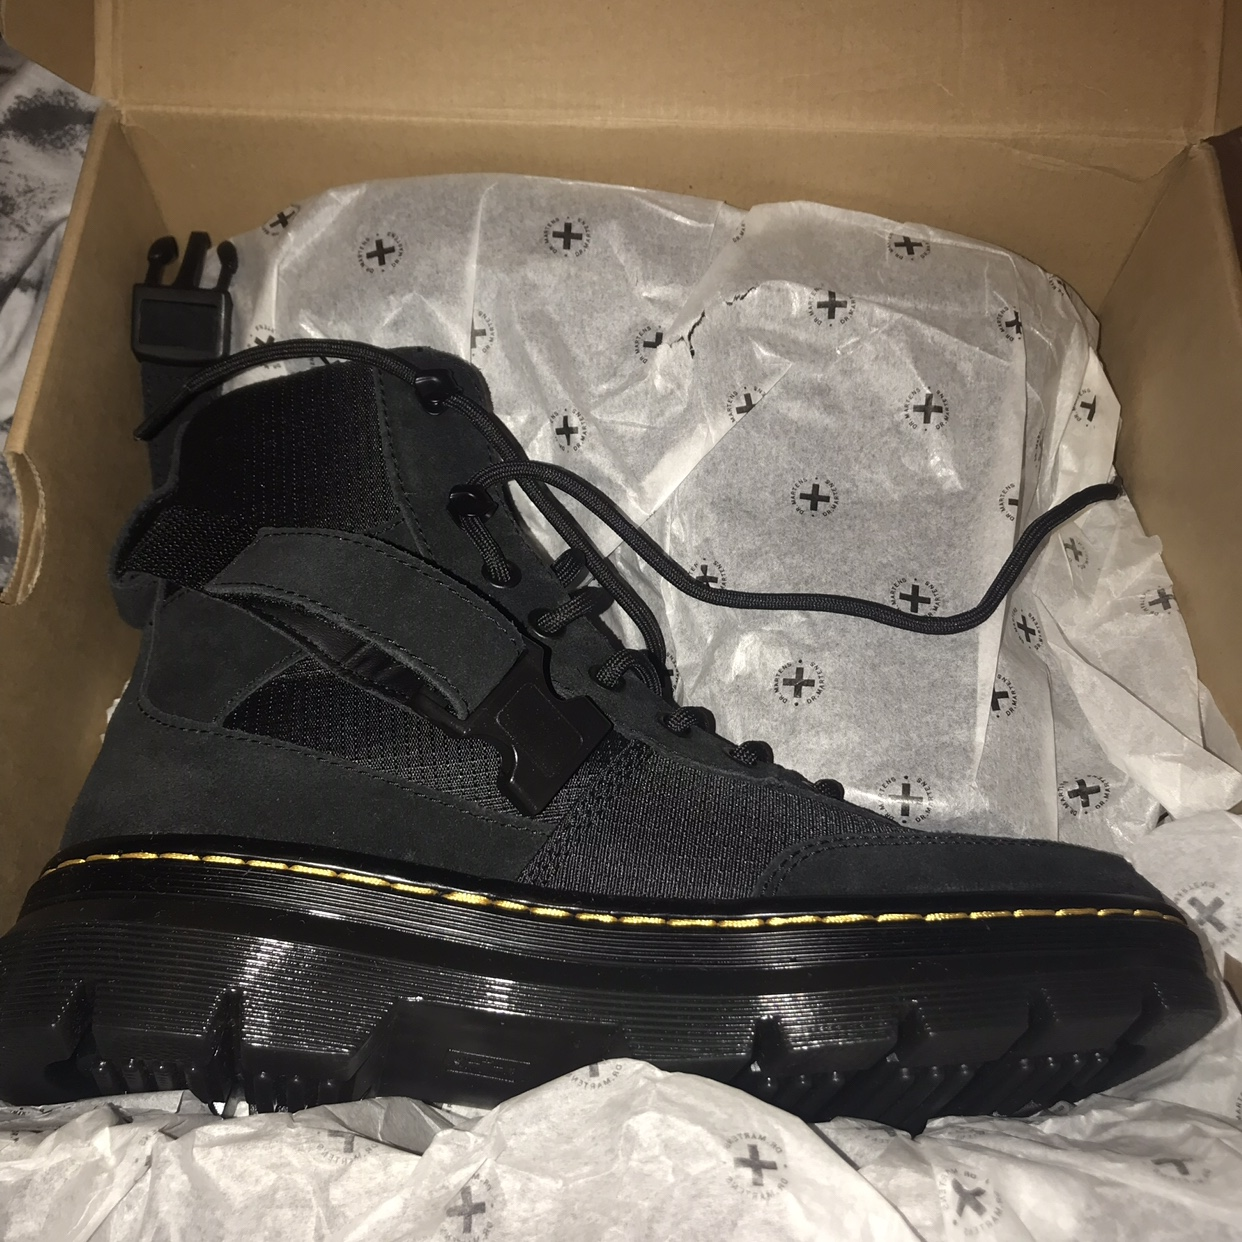 details for store new collection DR MARTINS COMBS TECH LACE UP BOOTS! SIZE 5, LAST ...